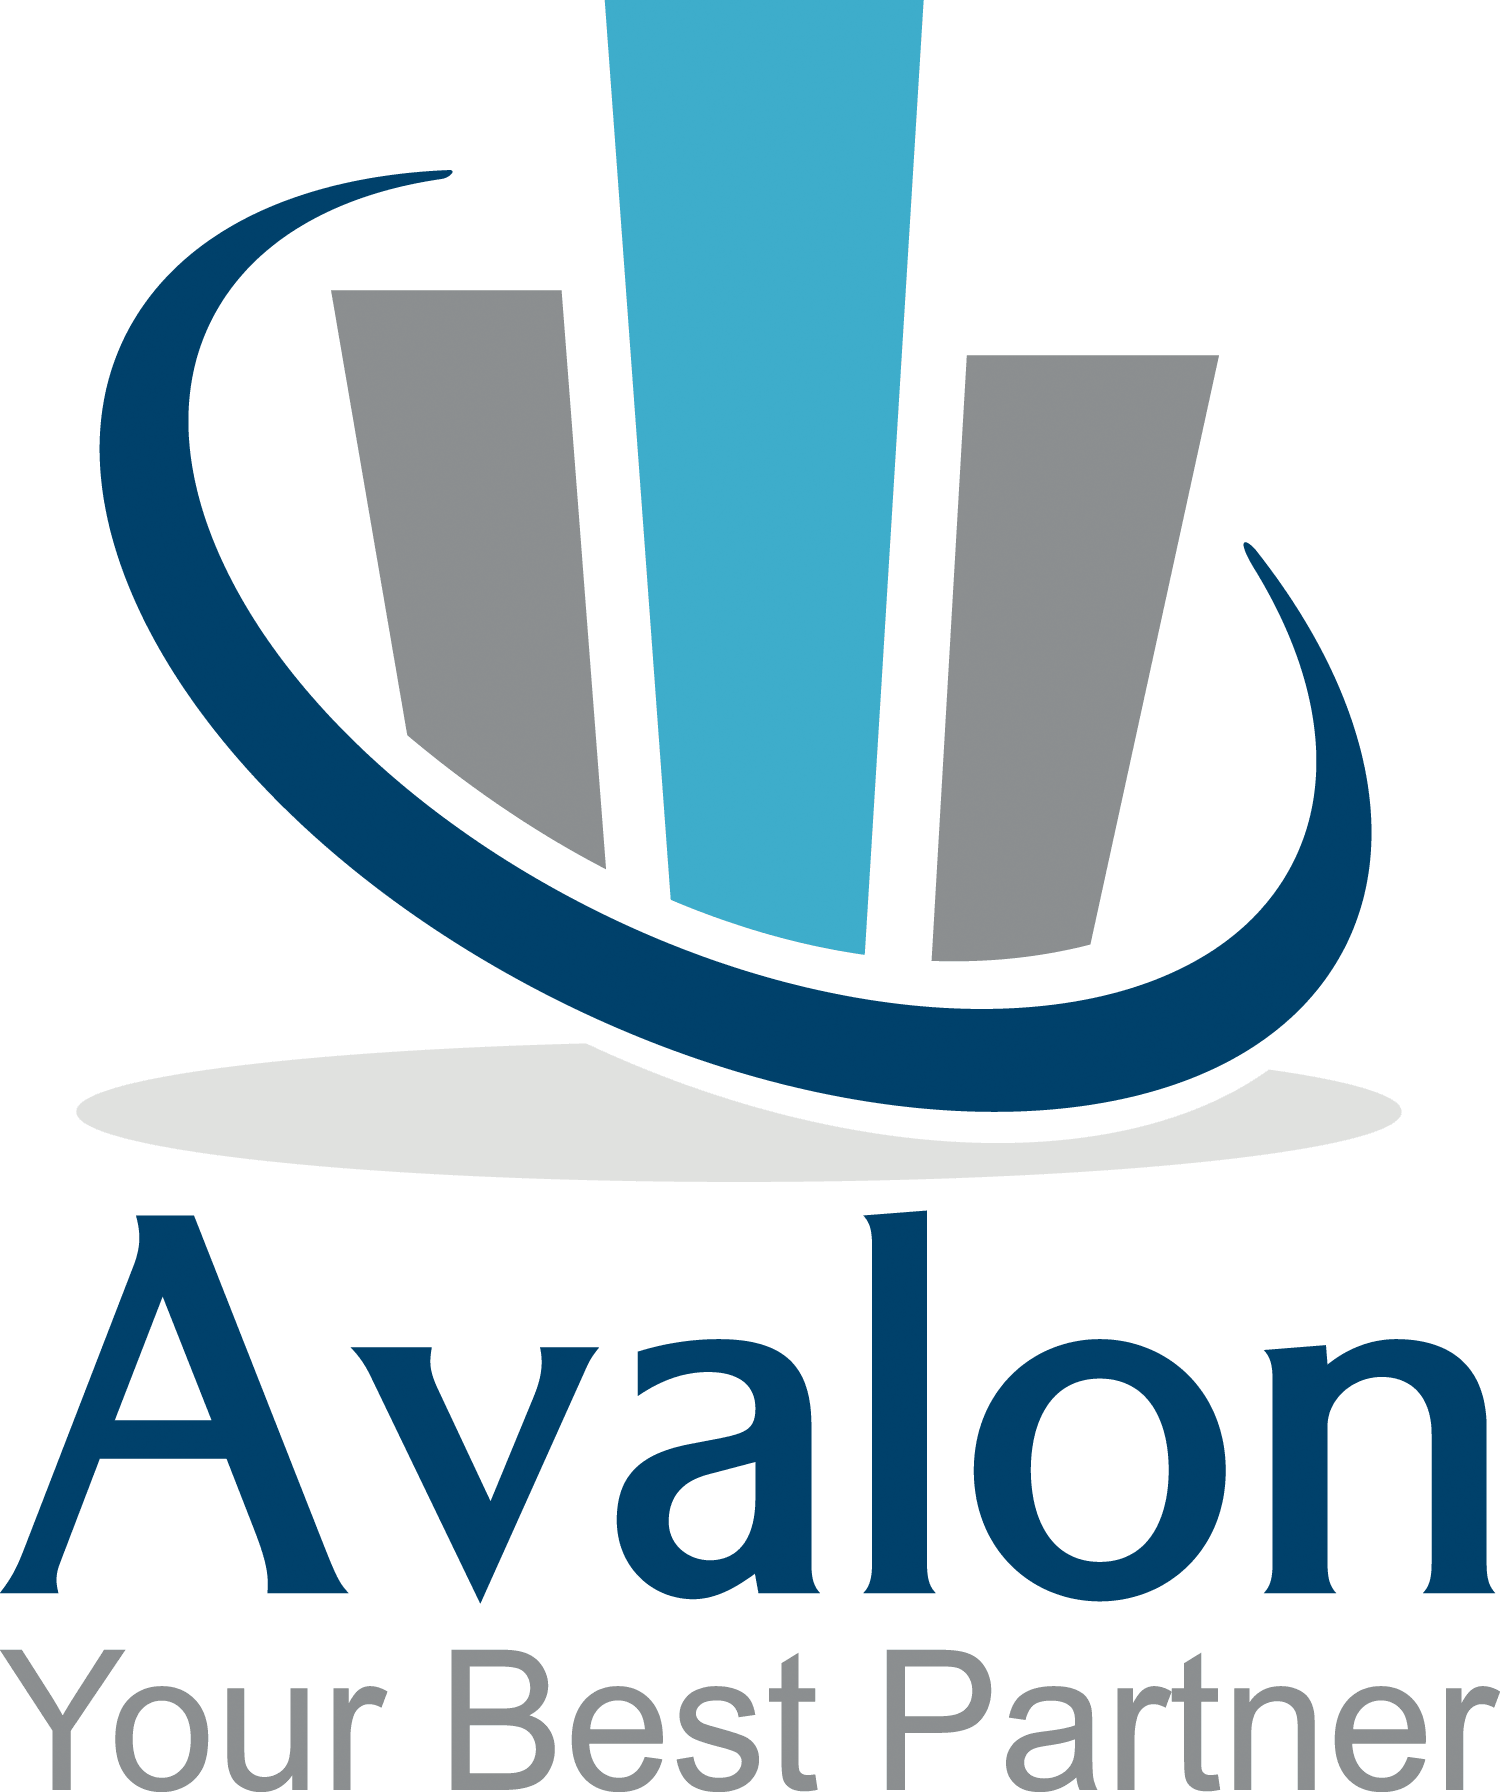 avalonsoftwareservices - Evolving Technologies